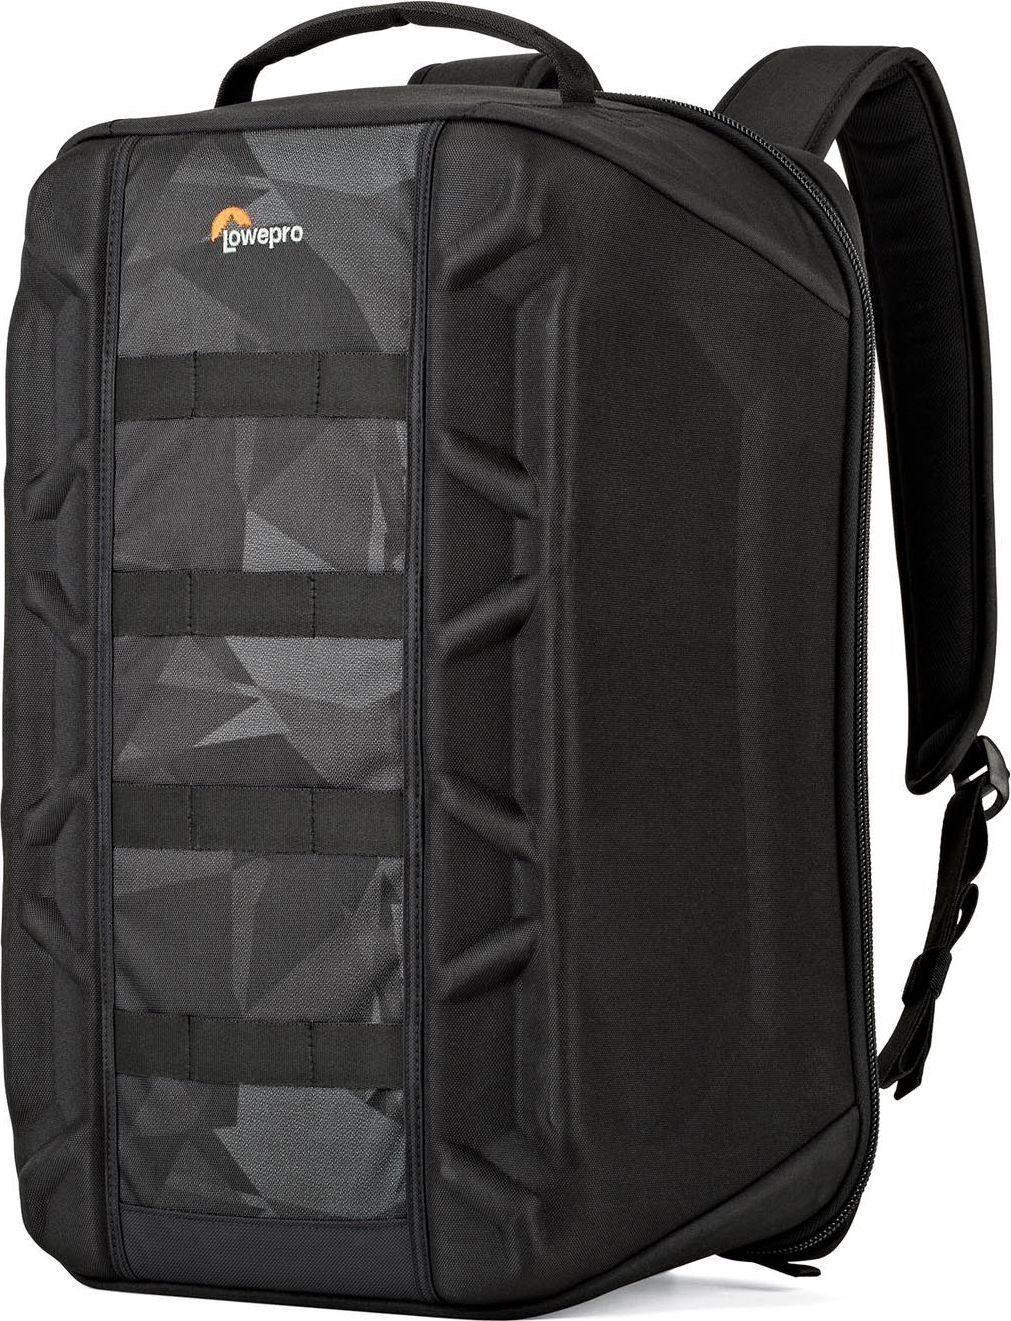 Рюкзак Lowepro DroneGuard BP 400, LP37100-PWW, черный daymen lowepro droneguard cs 300 для квадрокоптера